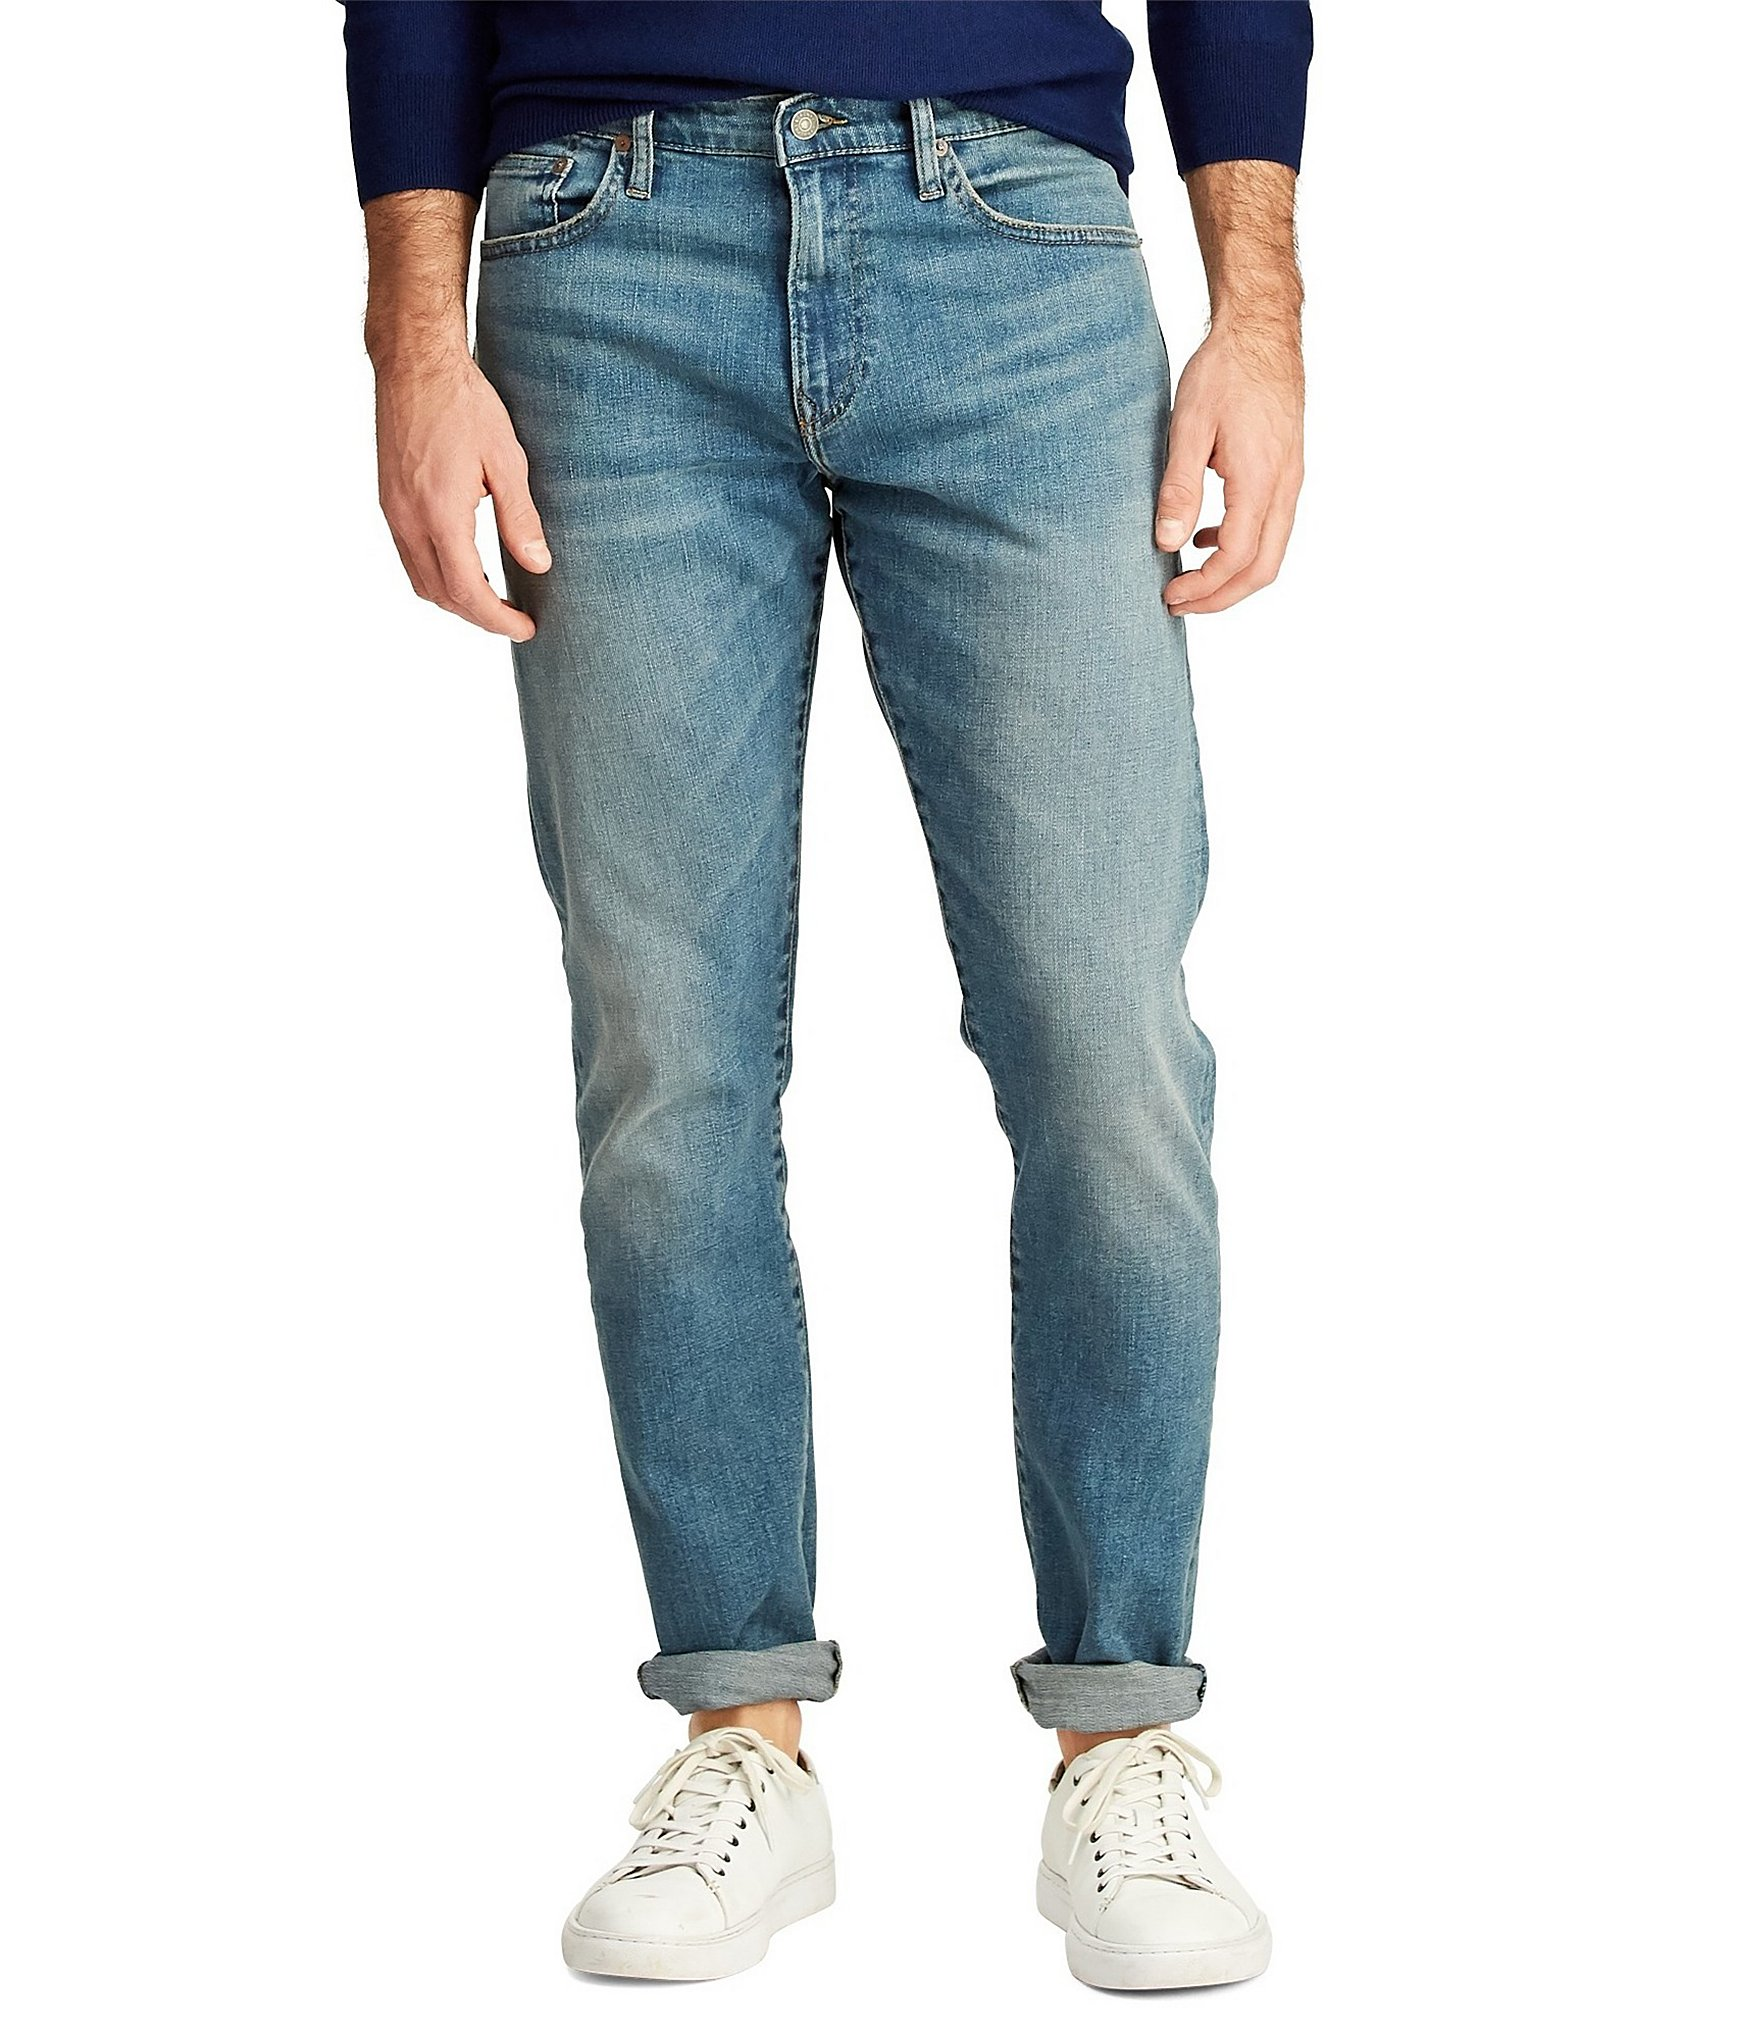 556c57f672 Polo Ralph Lauren Sullivan Slim-Fit Stretch Jeans | Dillard's